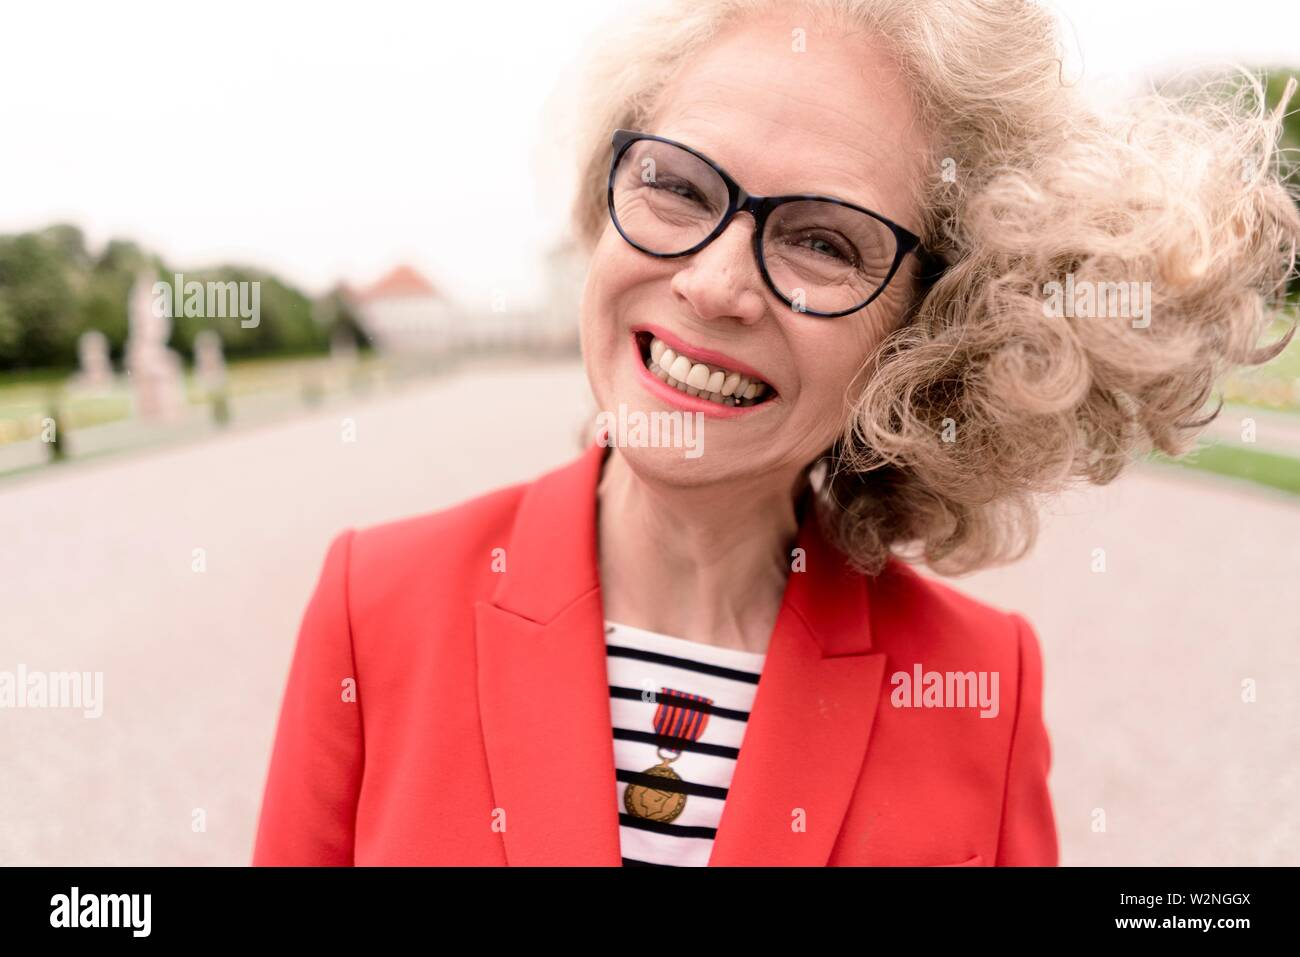 zestful senior woman (67 years old) in park, in Nymphenburg, Munich, Germany. - Stock Image